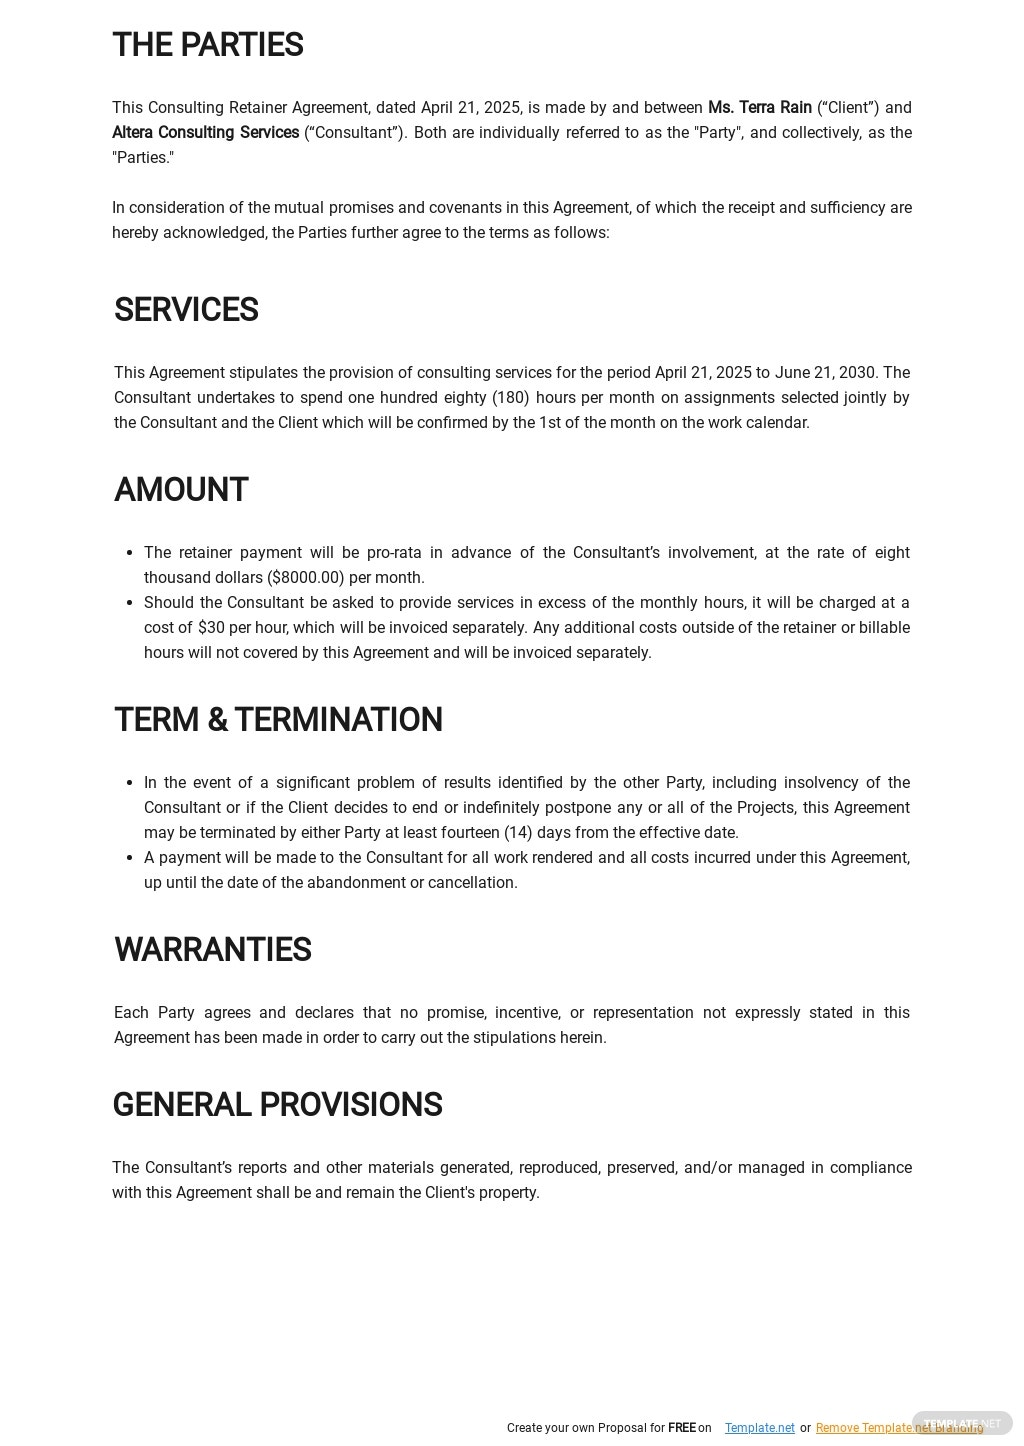 Consulting Retainer Agreement Template 1.jpe